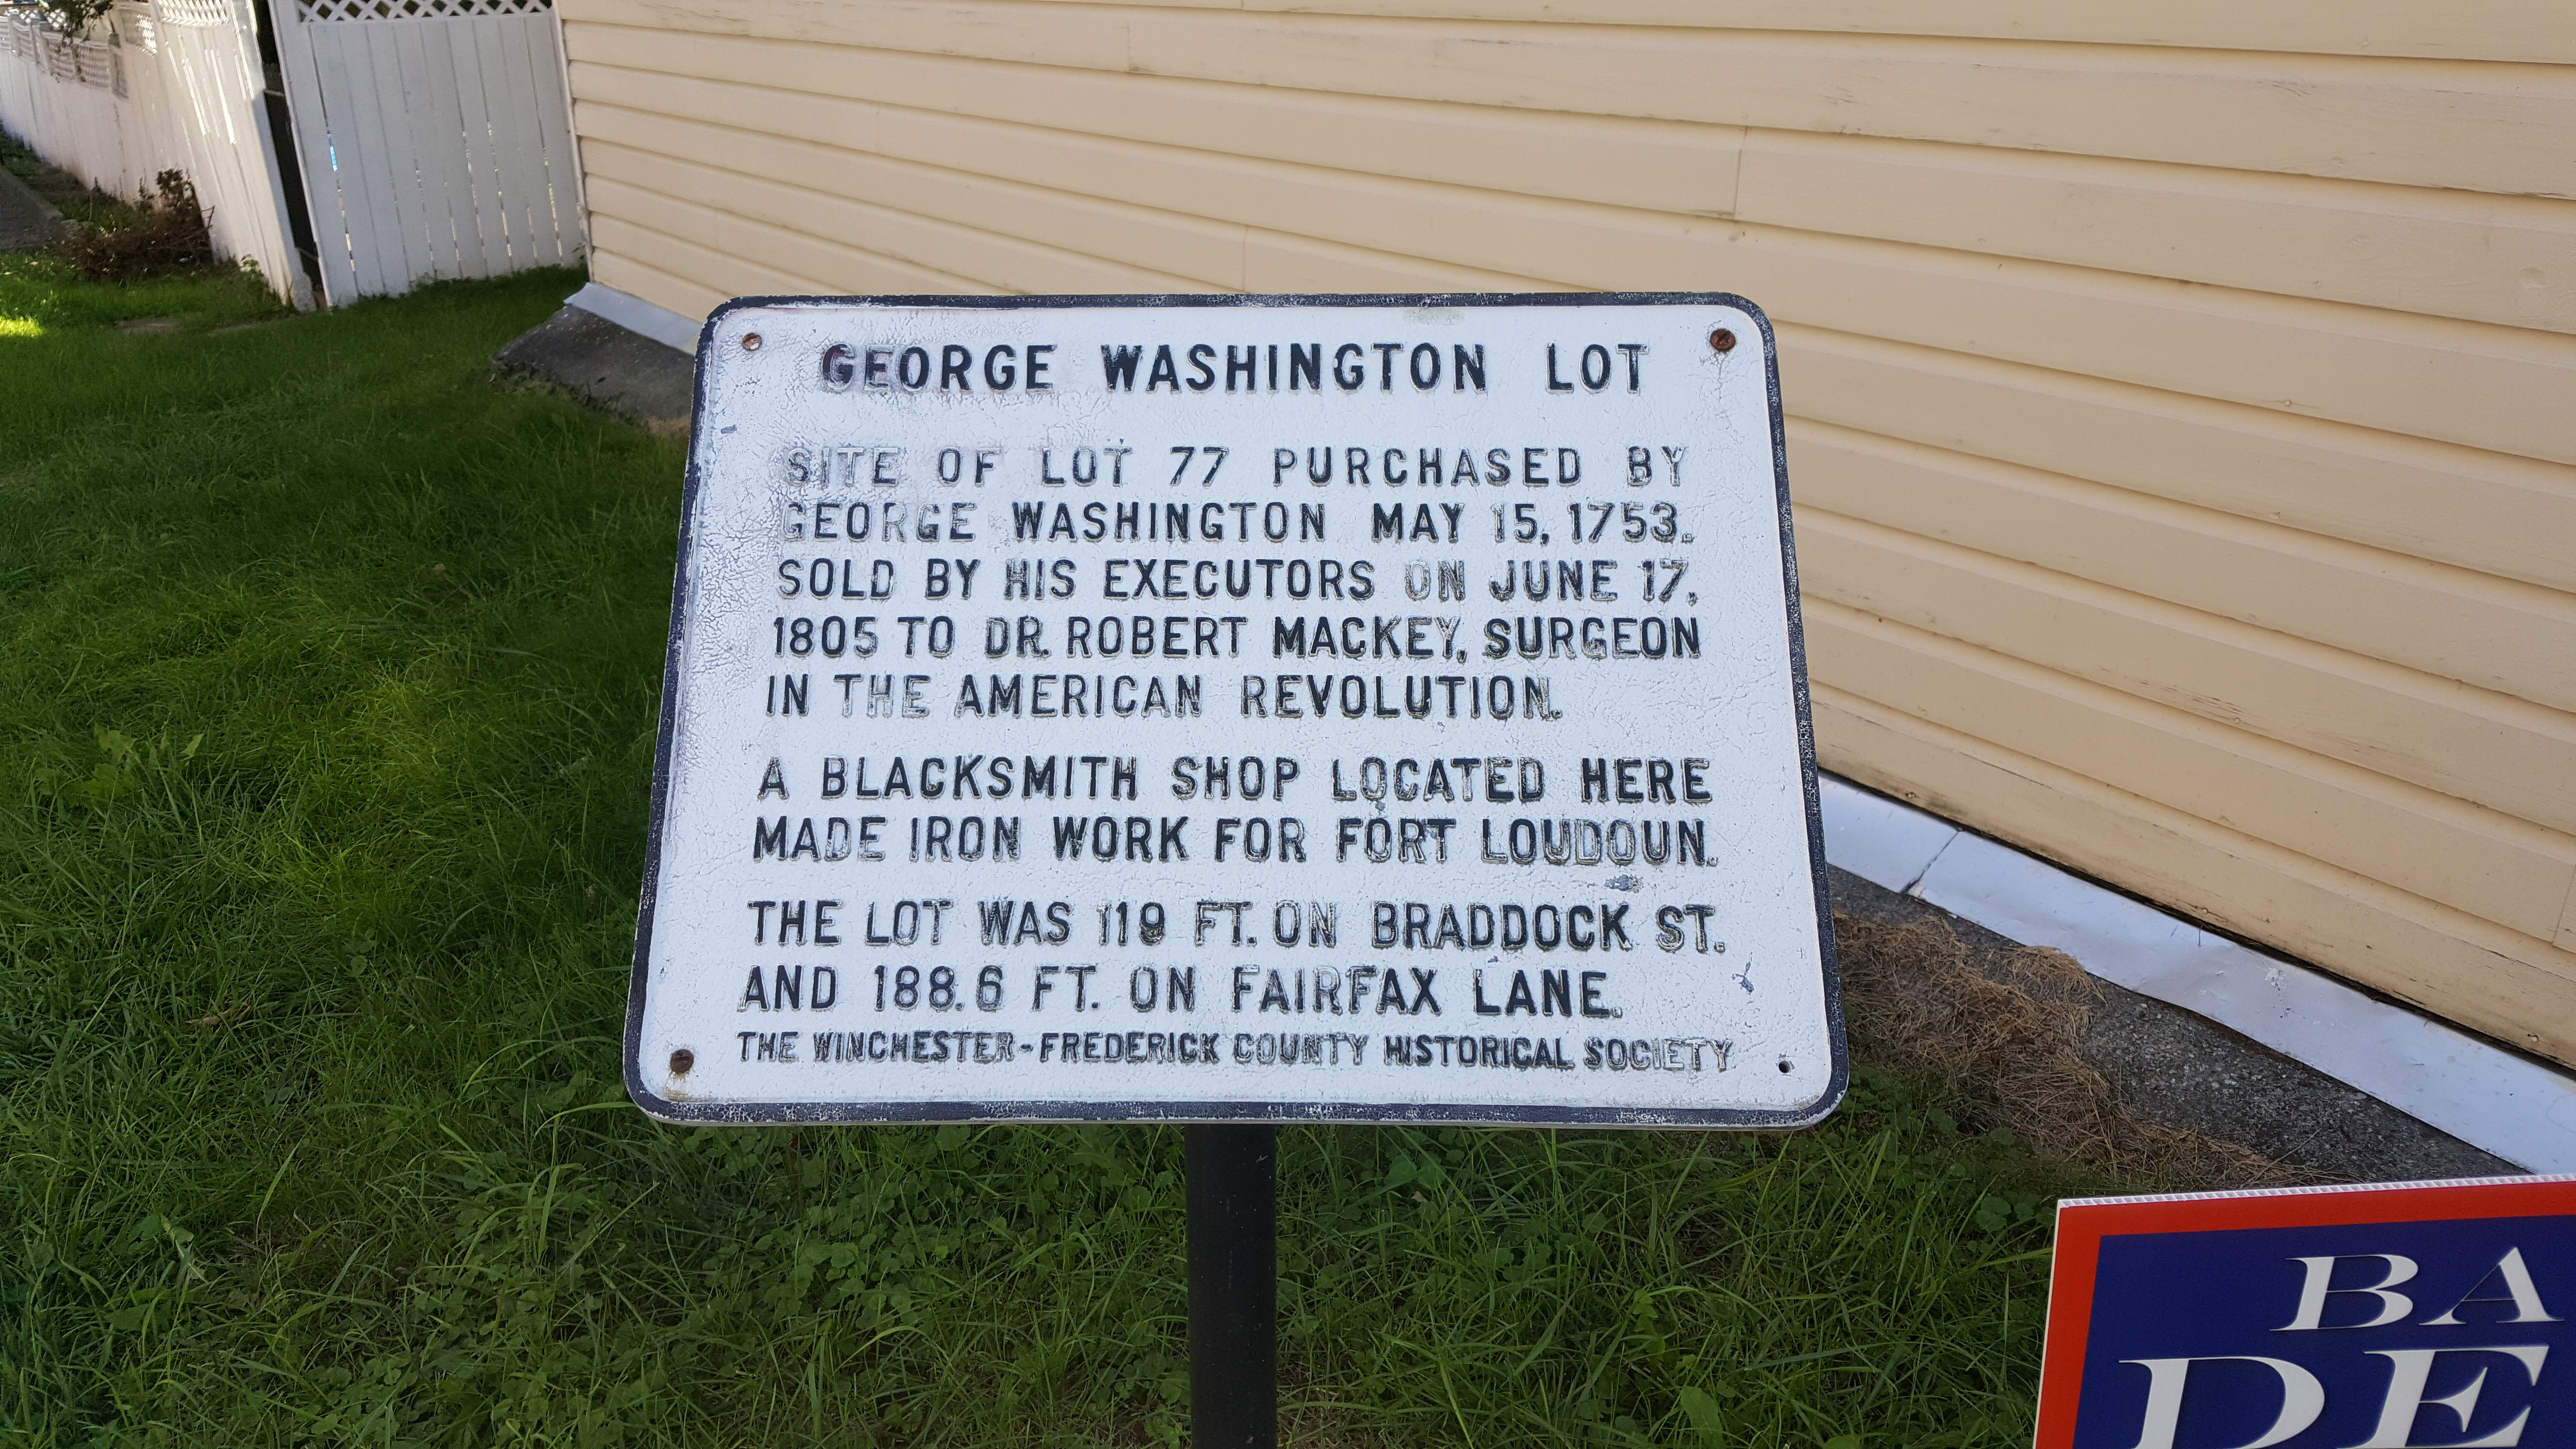 George Washington lot